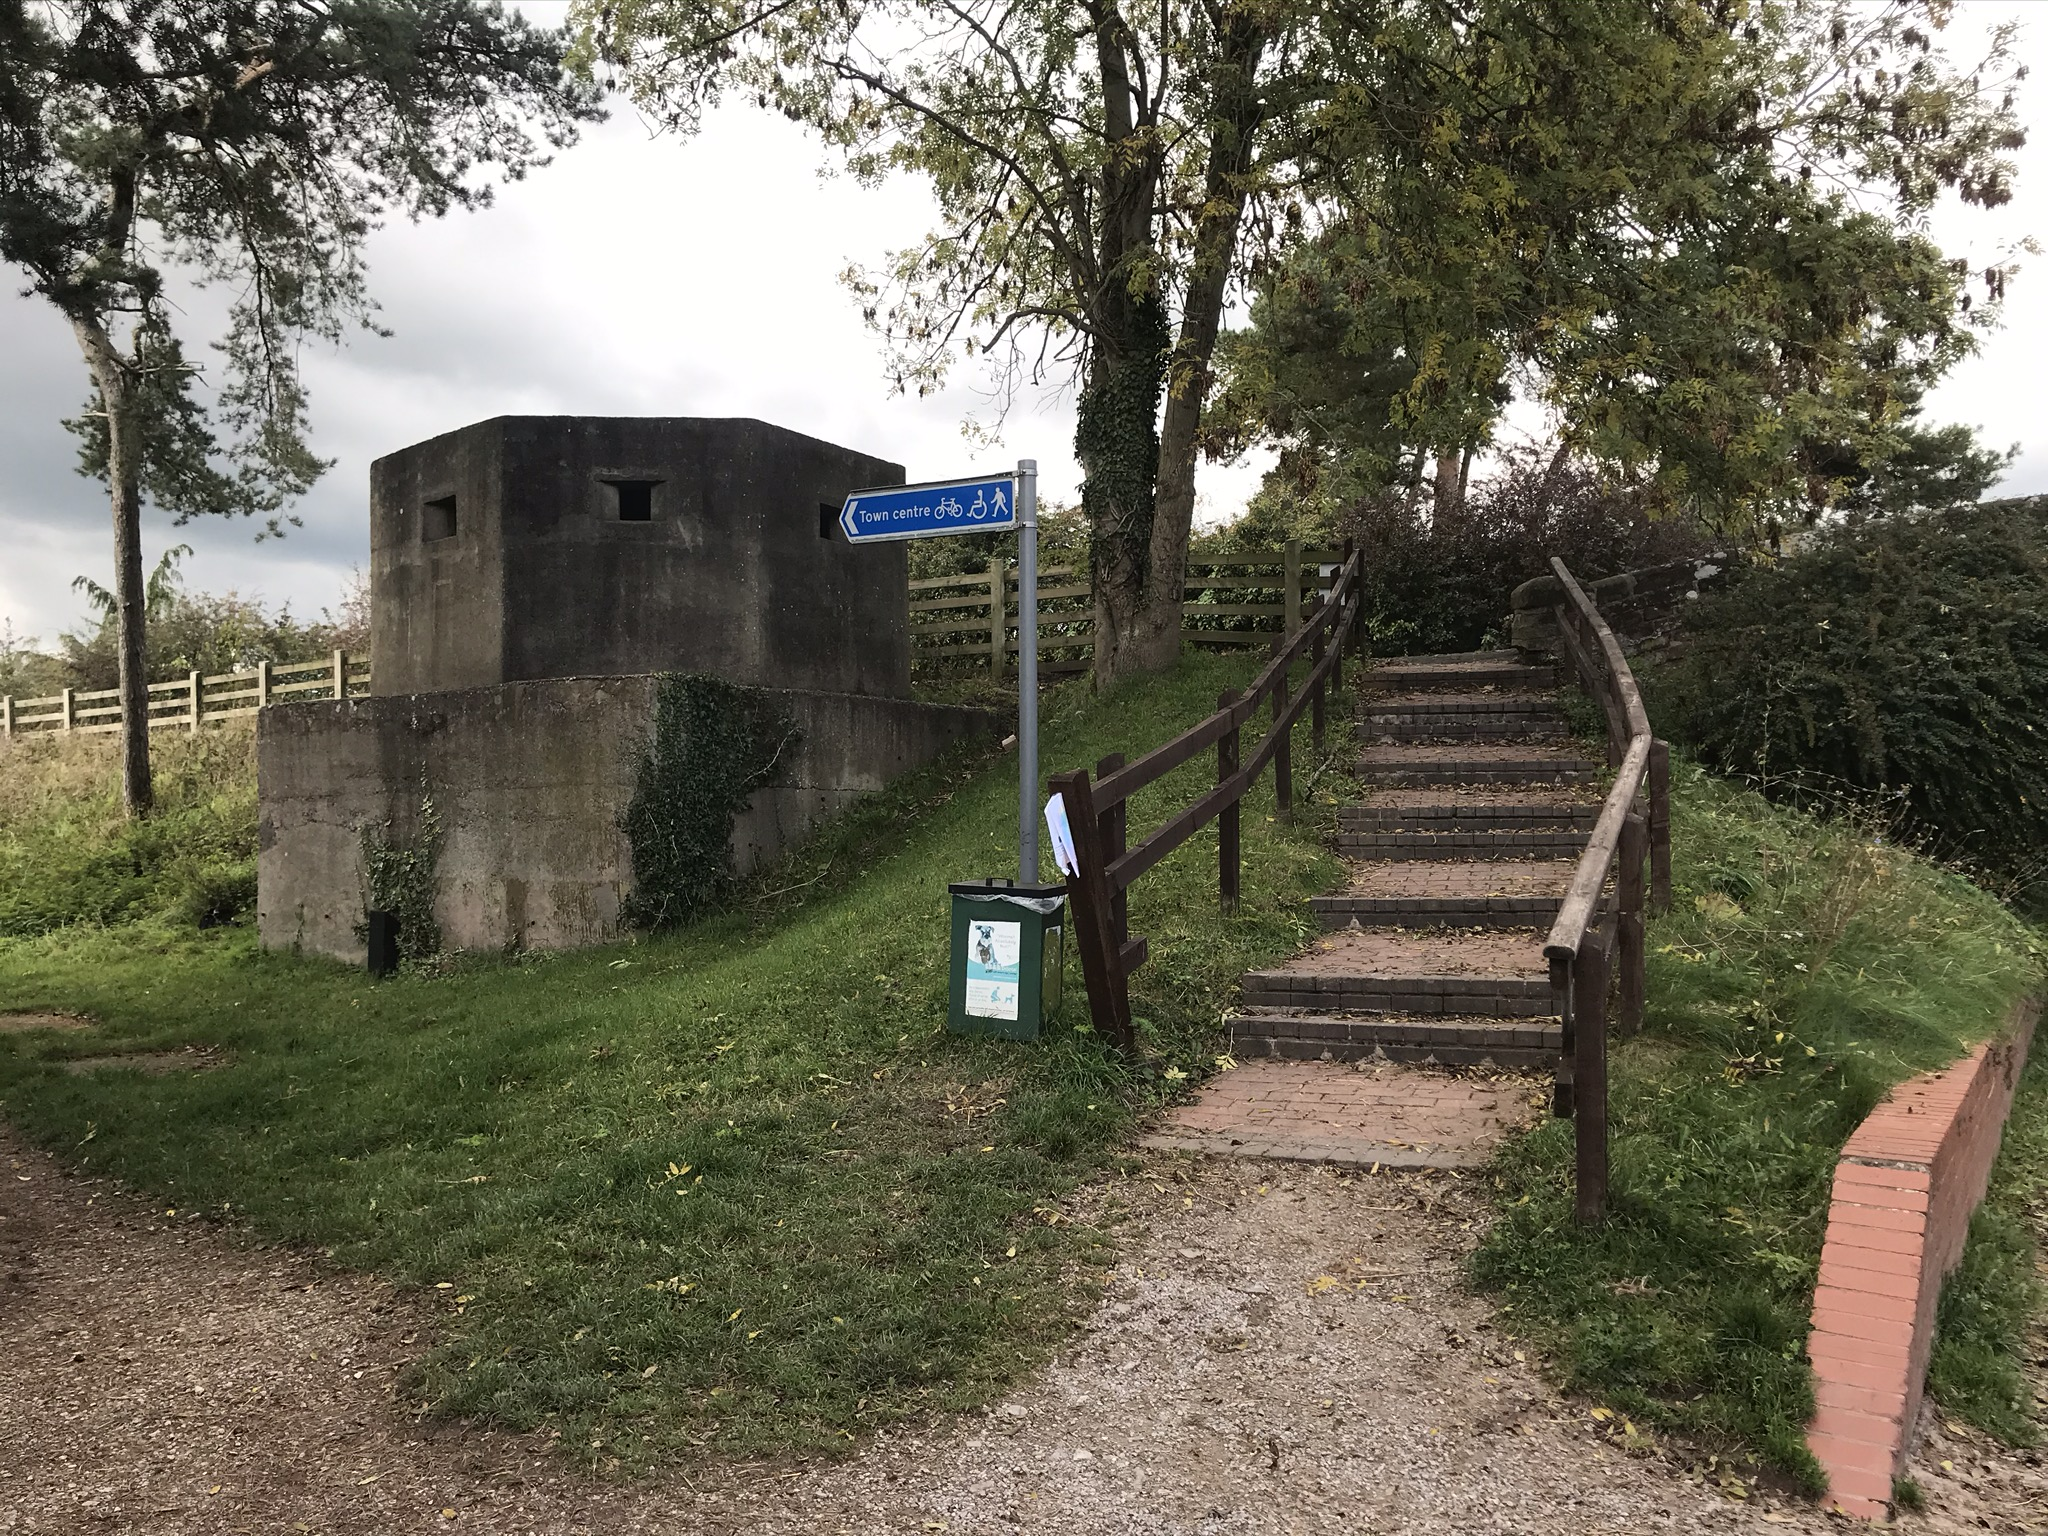 A concrete WW2 pillbox next to brick steps and a blue sign pointing towards the town centre